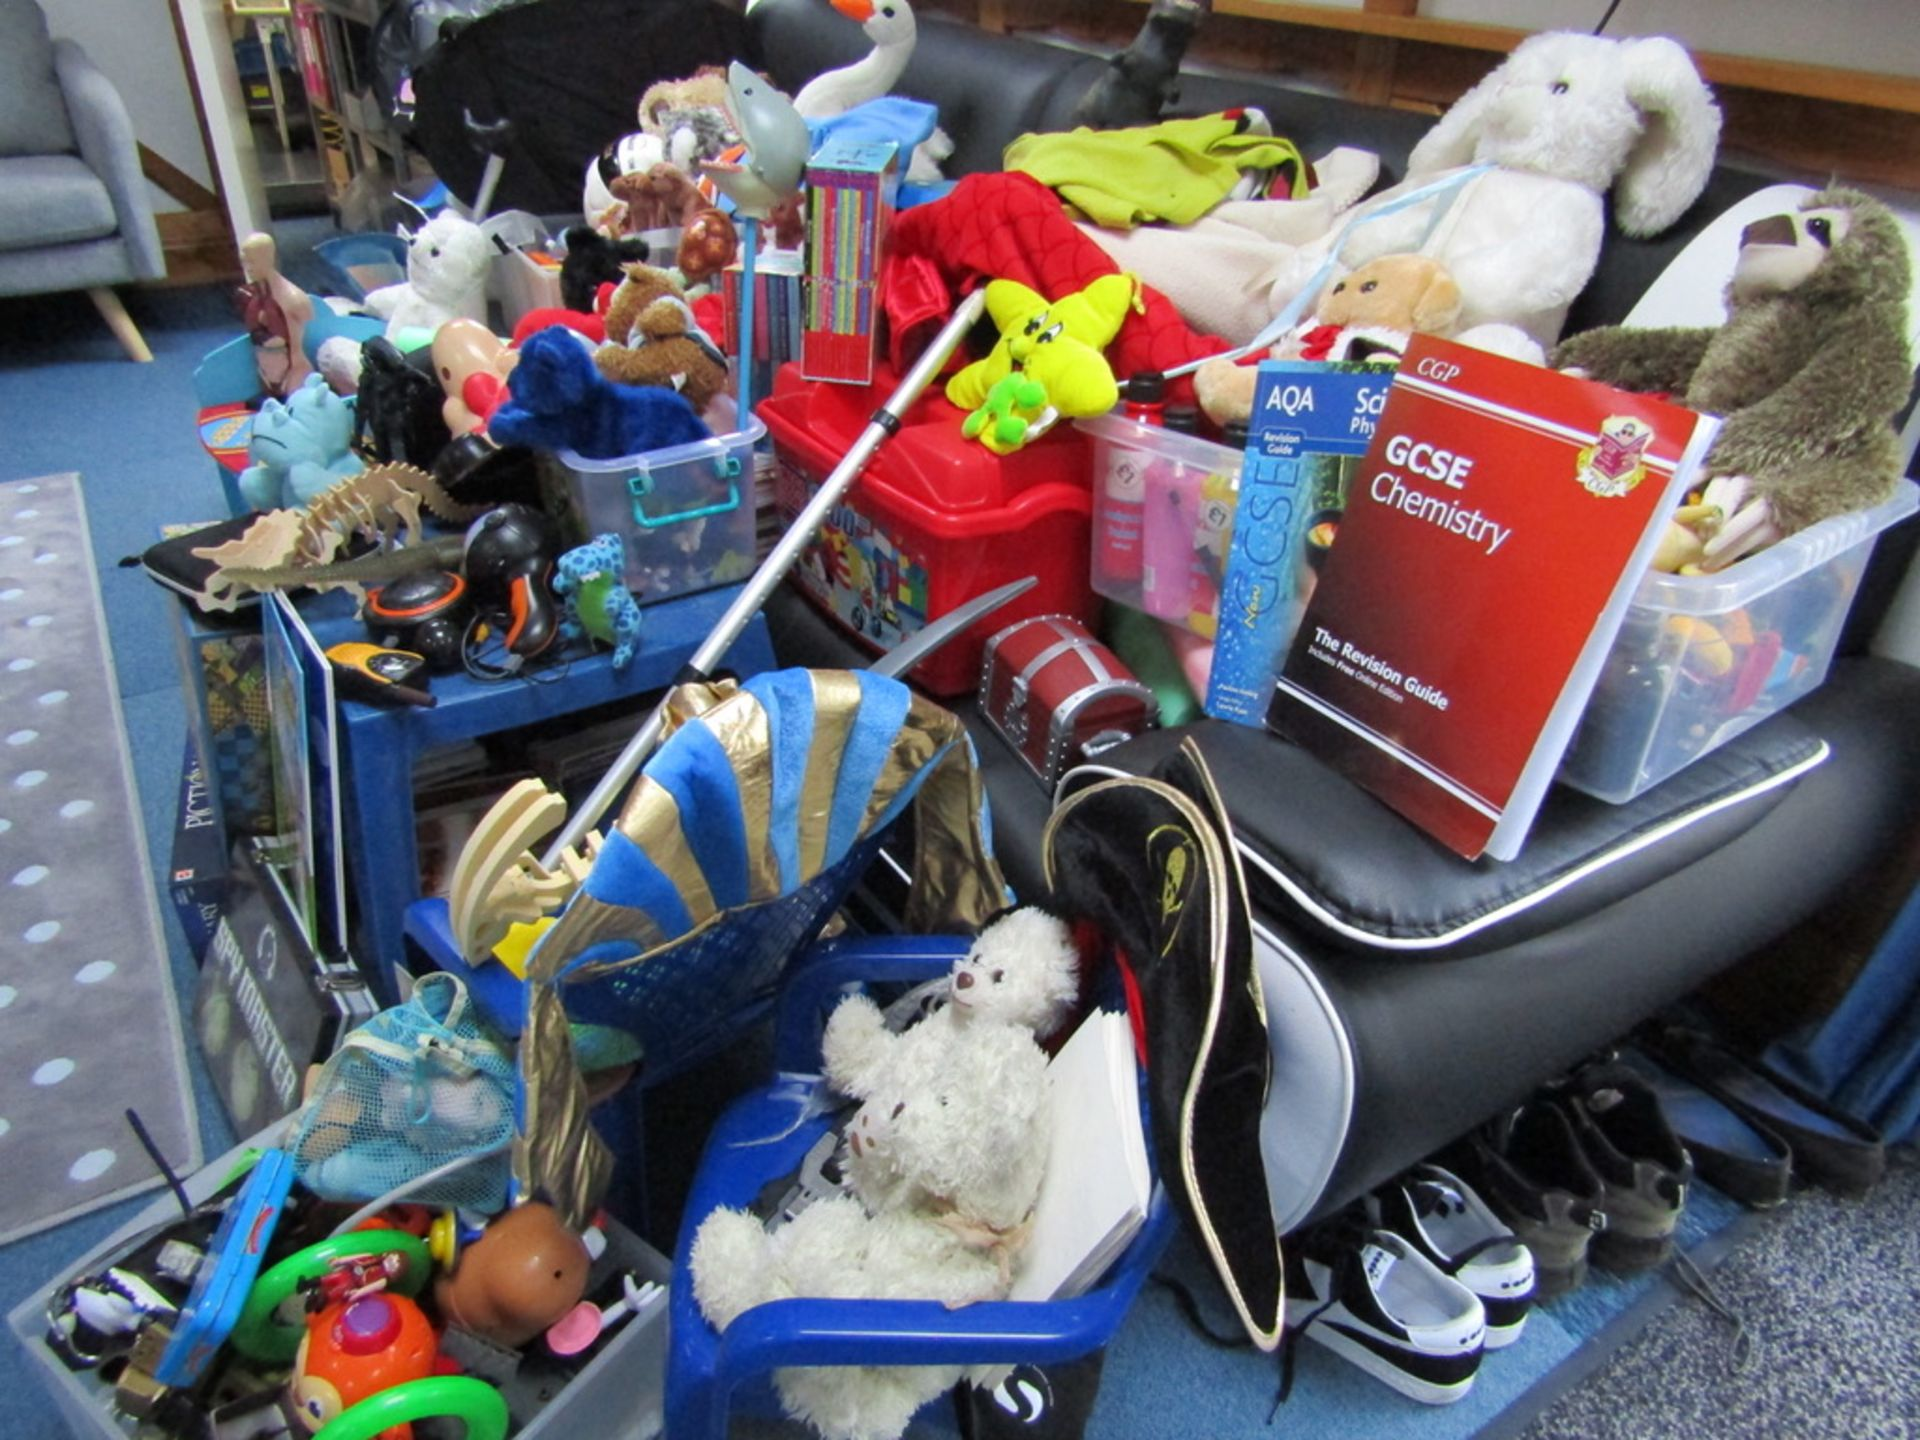 Pallet Load of USED Toys and Games. - Image 10 of 10